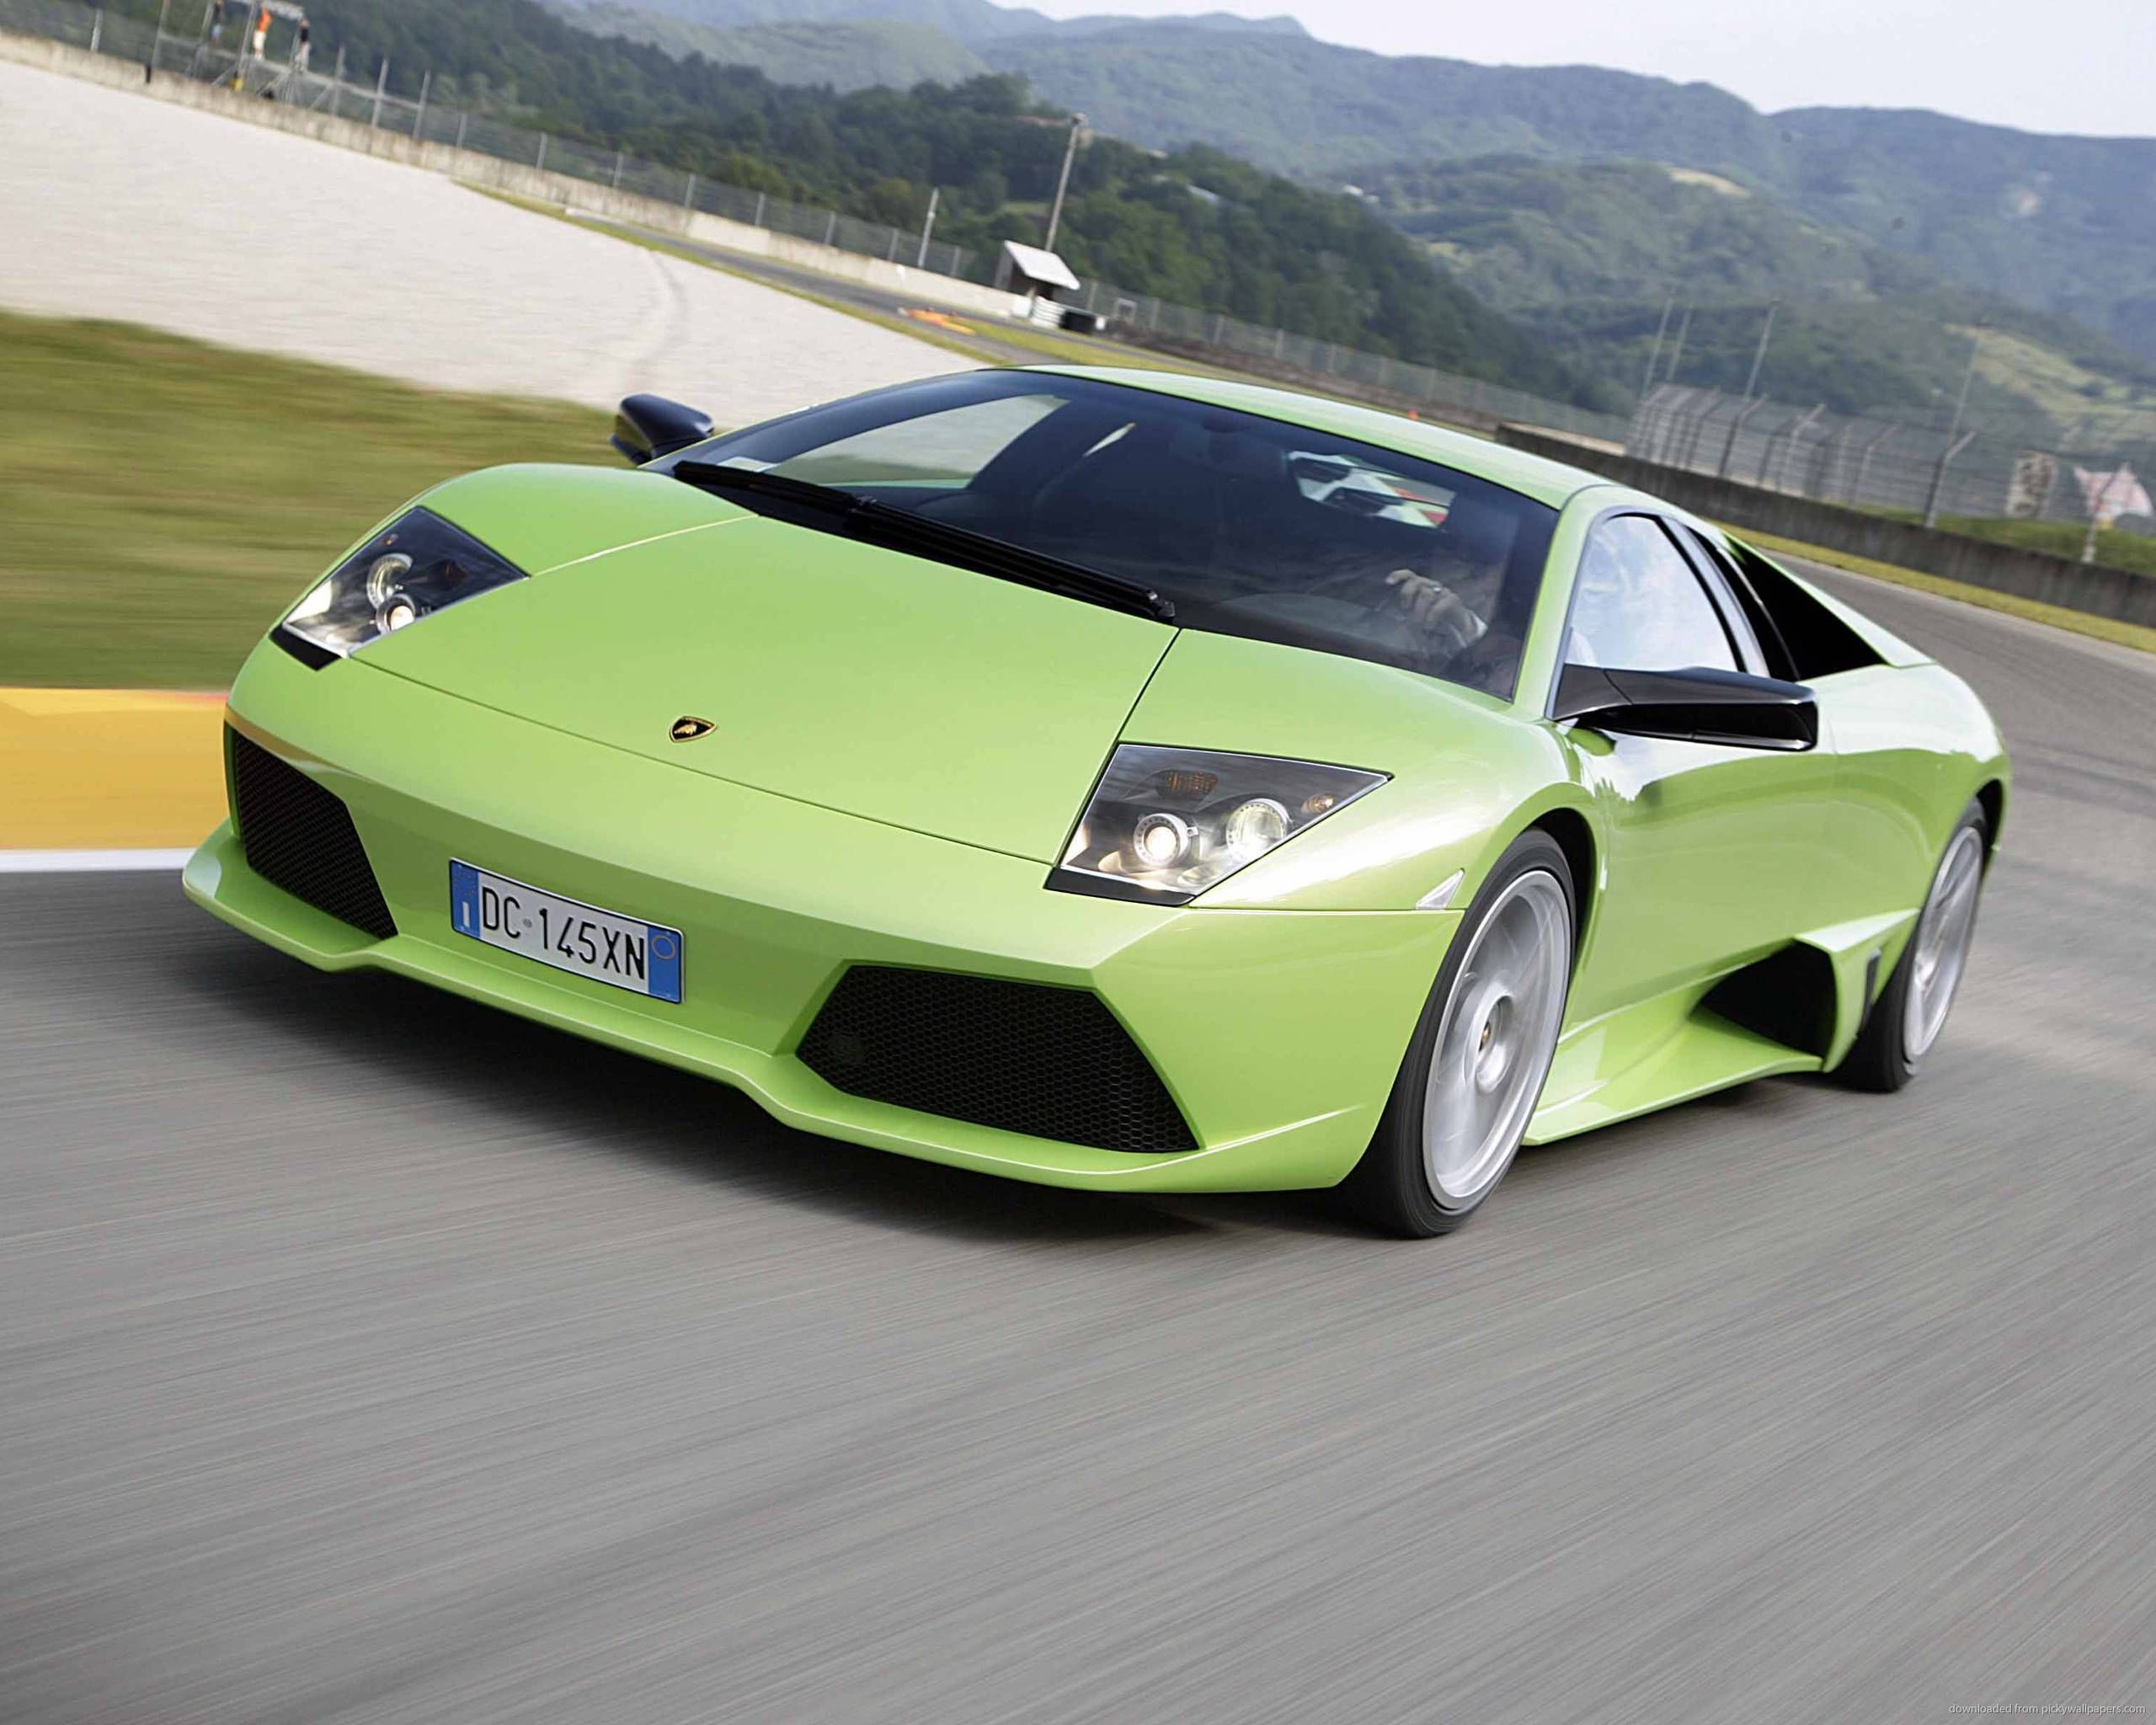 Lamborghini Gallardo SV Gran Turismo Wallpaper HD Car Wallpapers